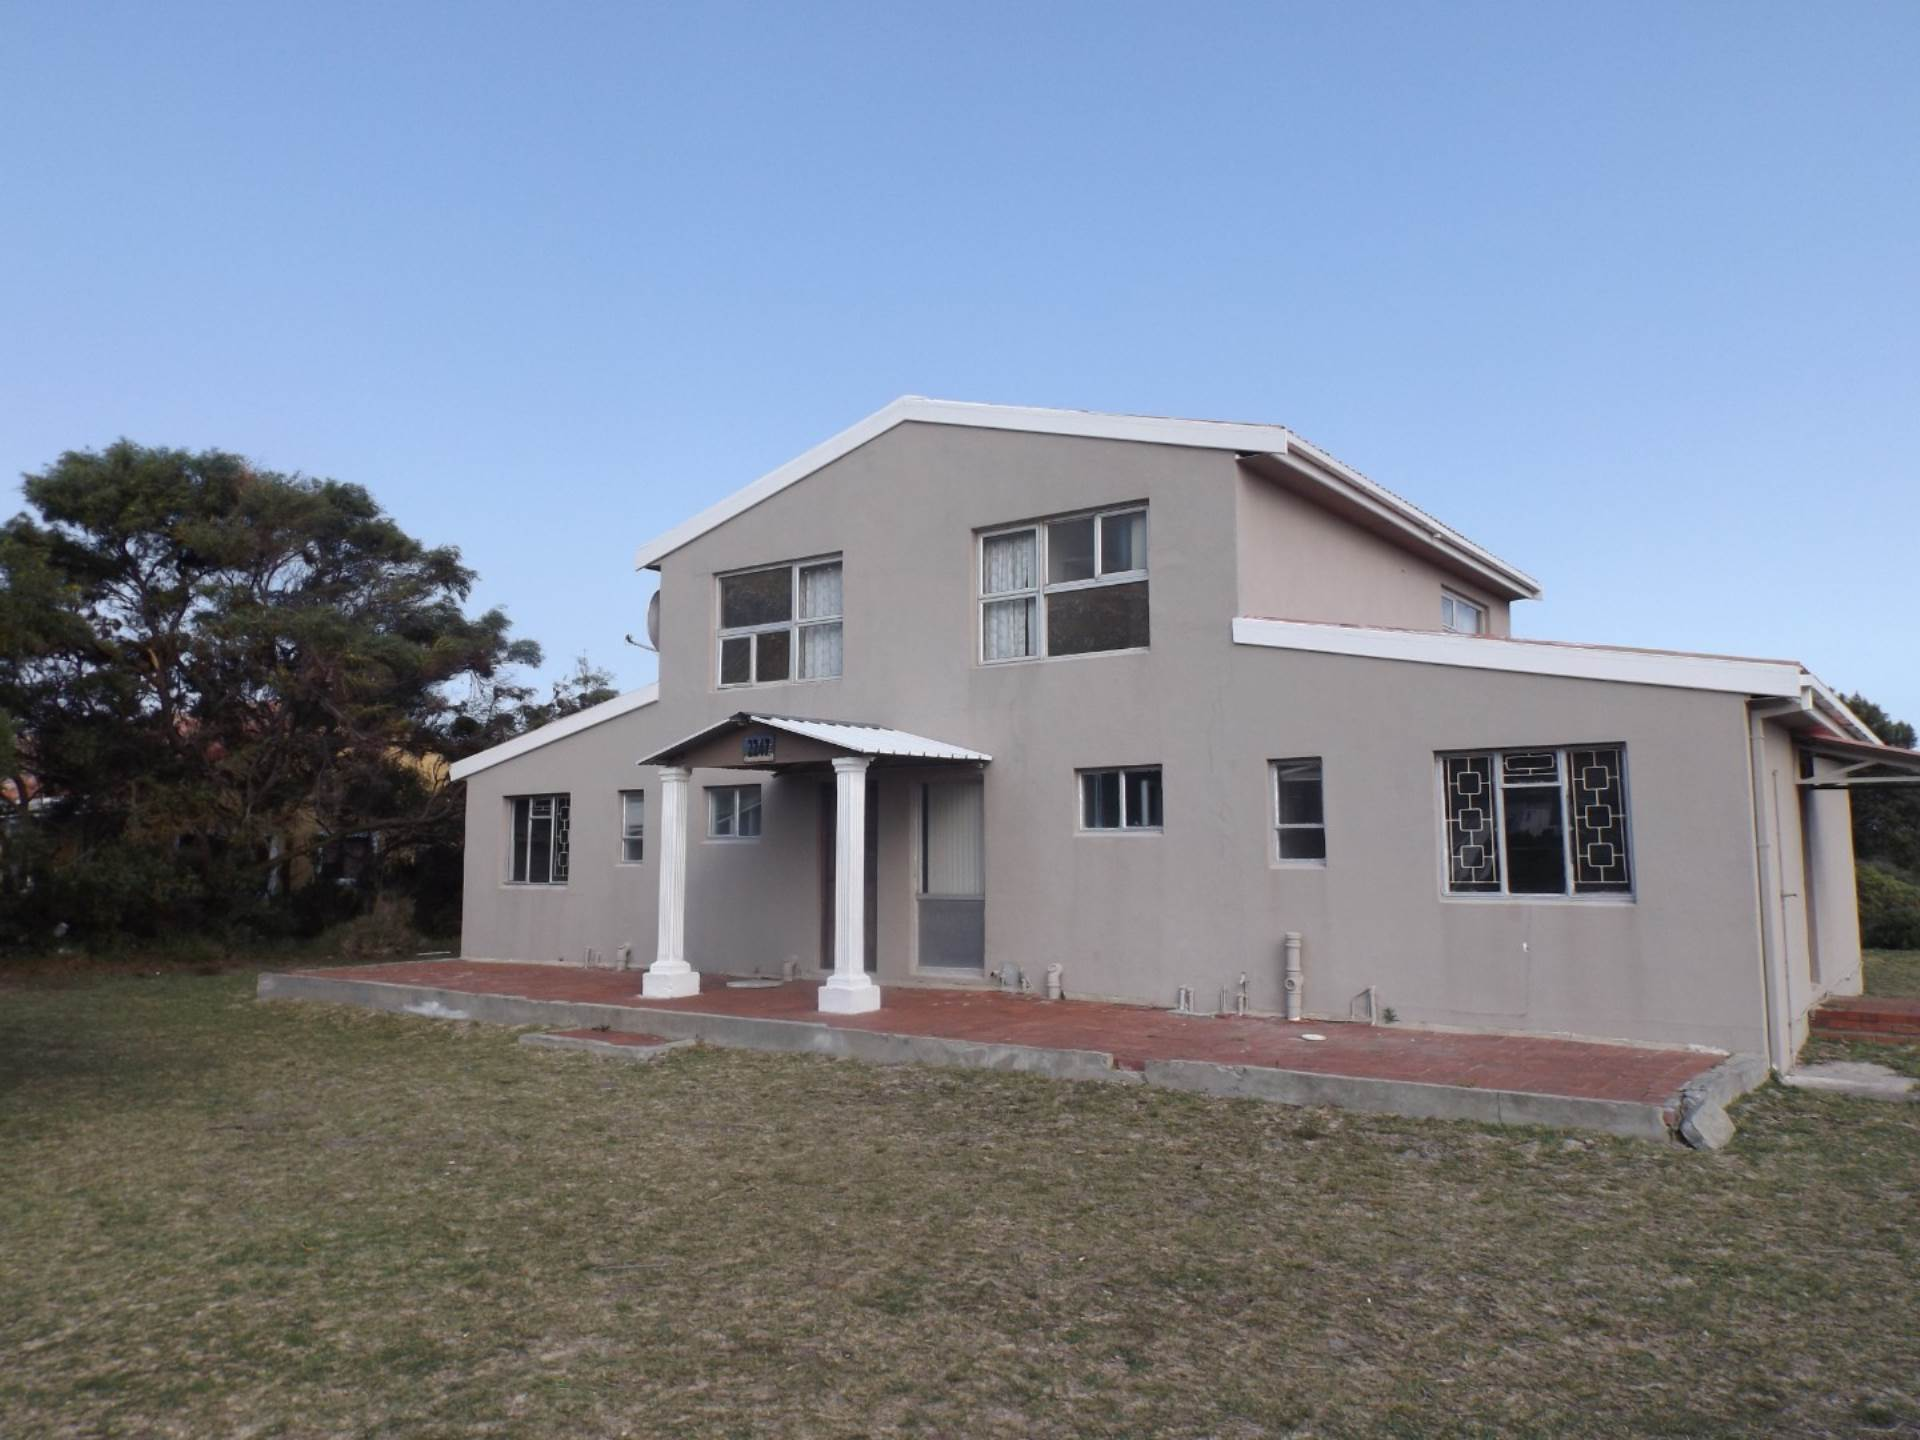 4 BedroomHouse For Sale In Bettys Bay